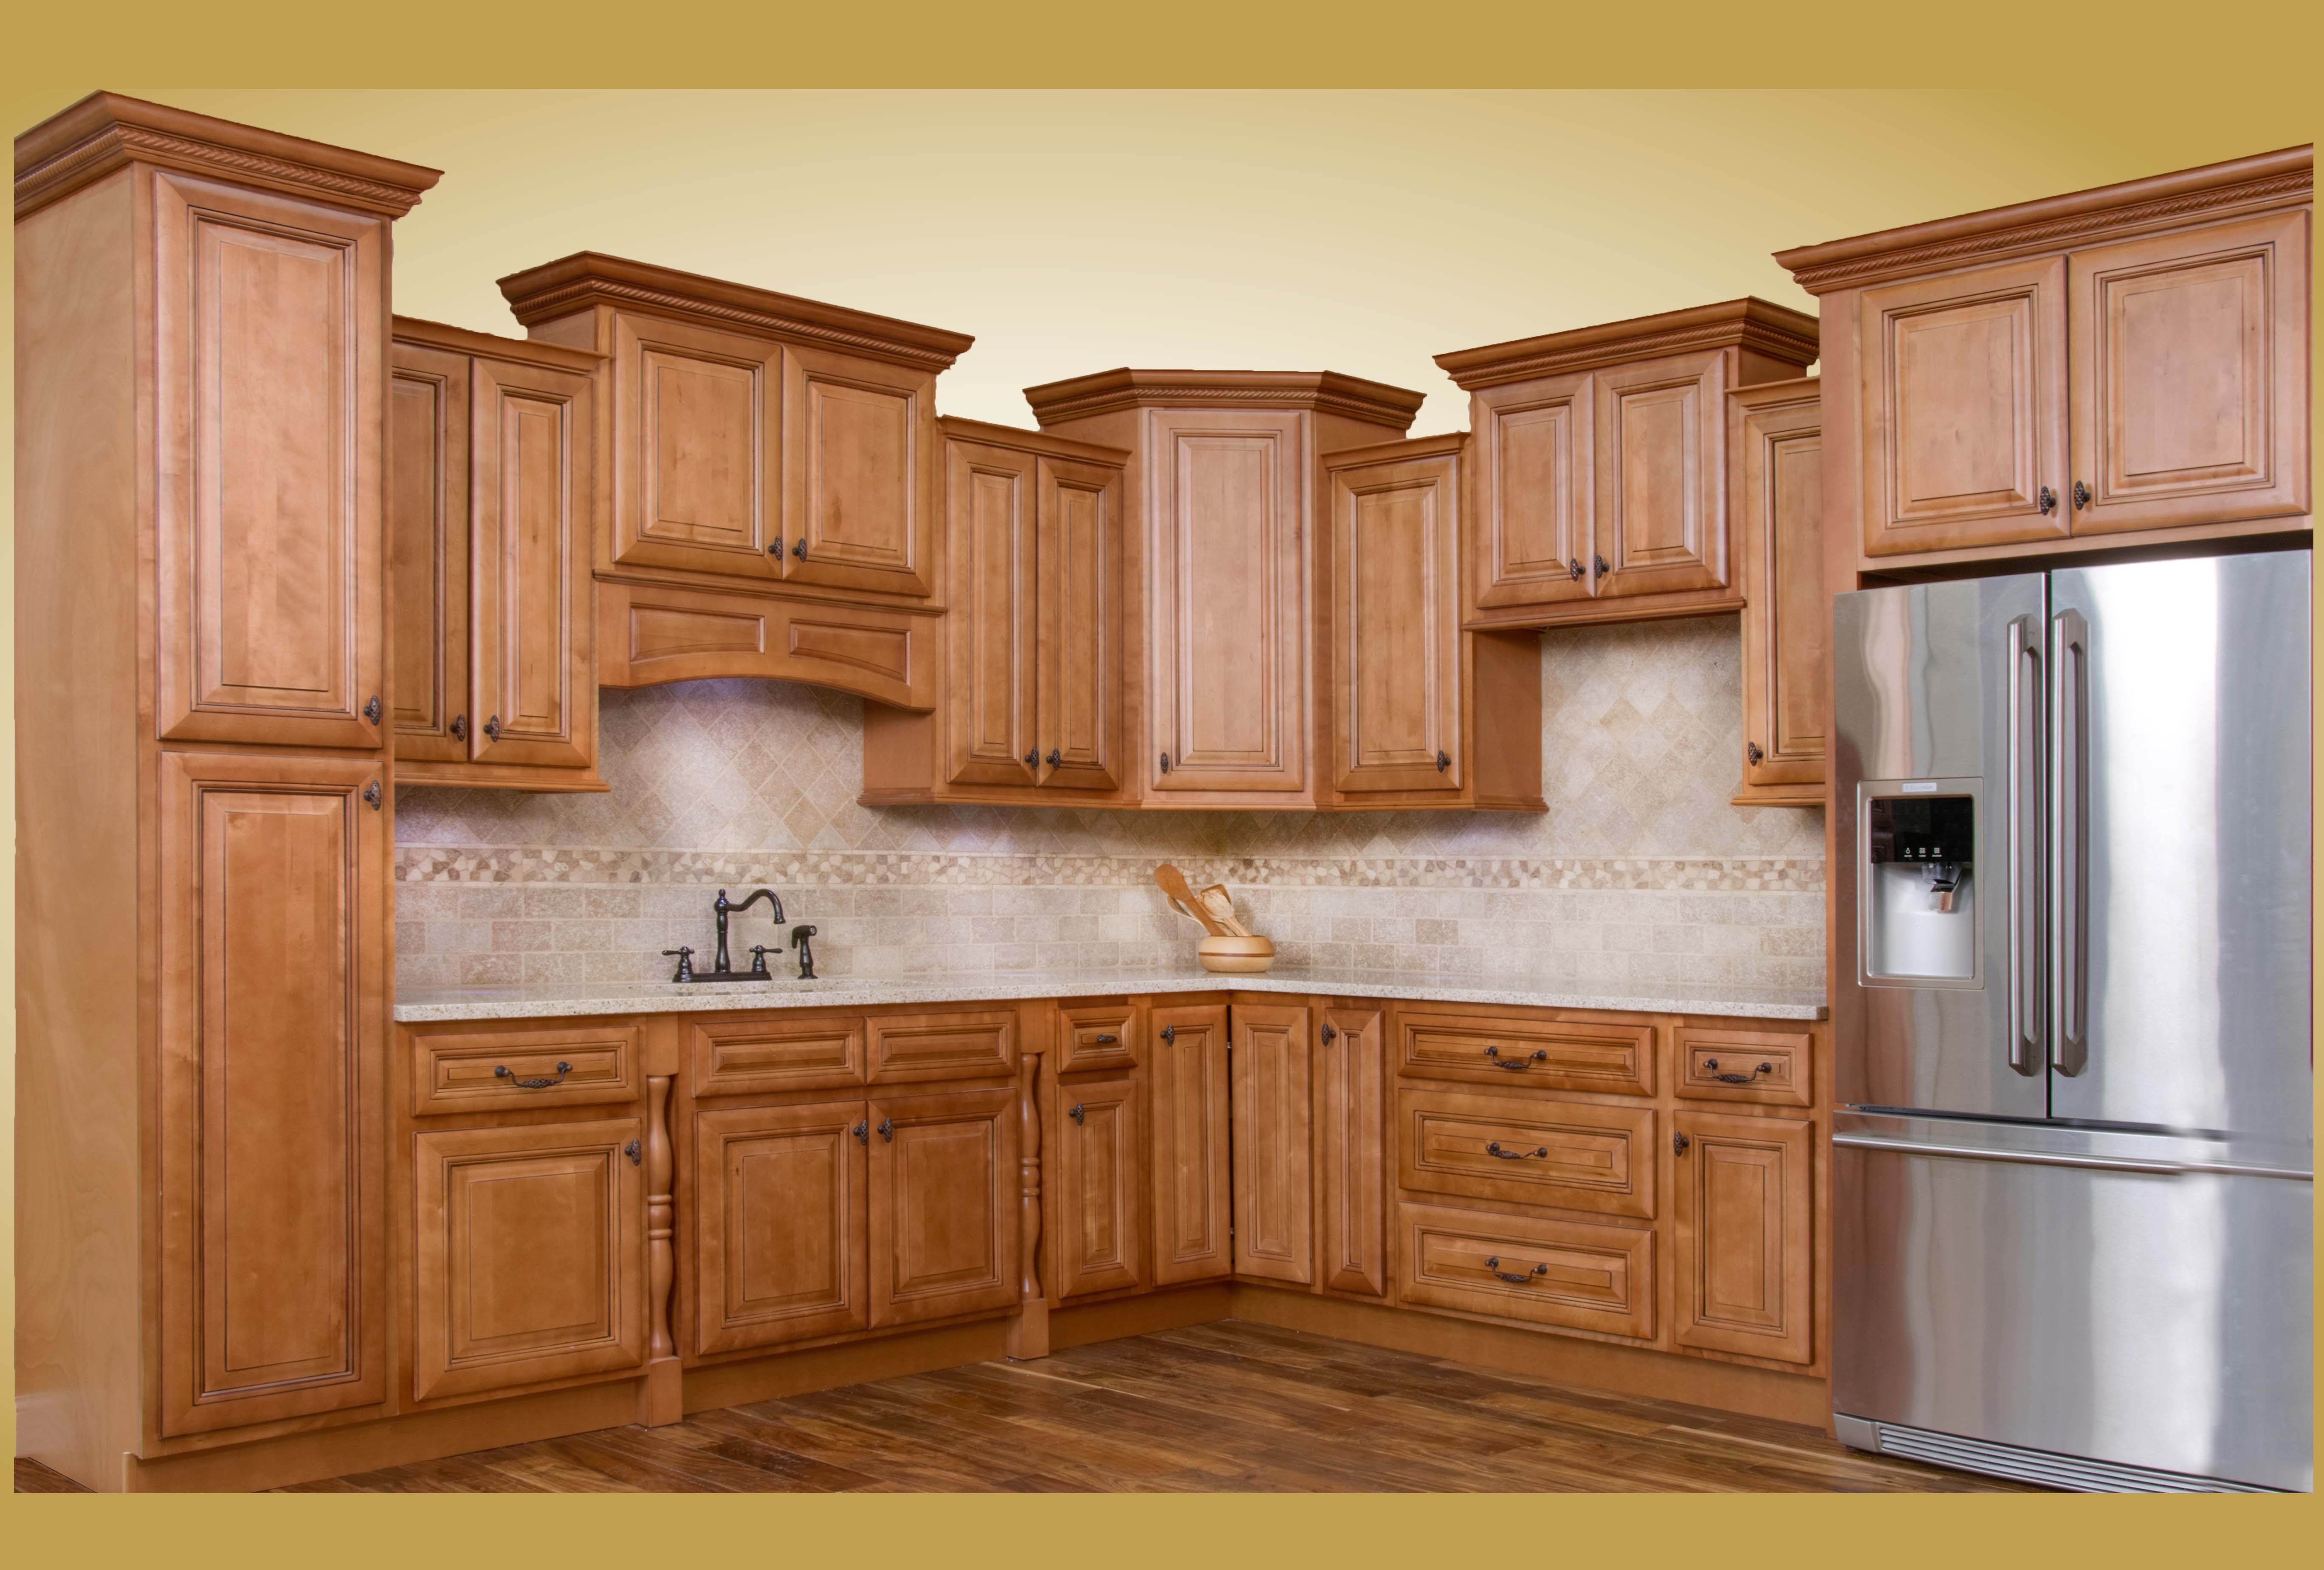 Best Cabiets For Kitchen Charlotte Nc